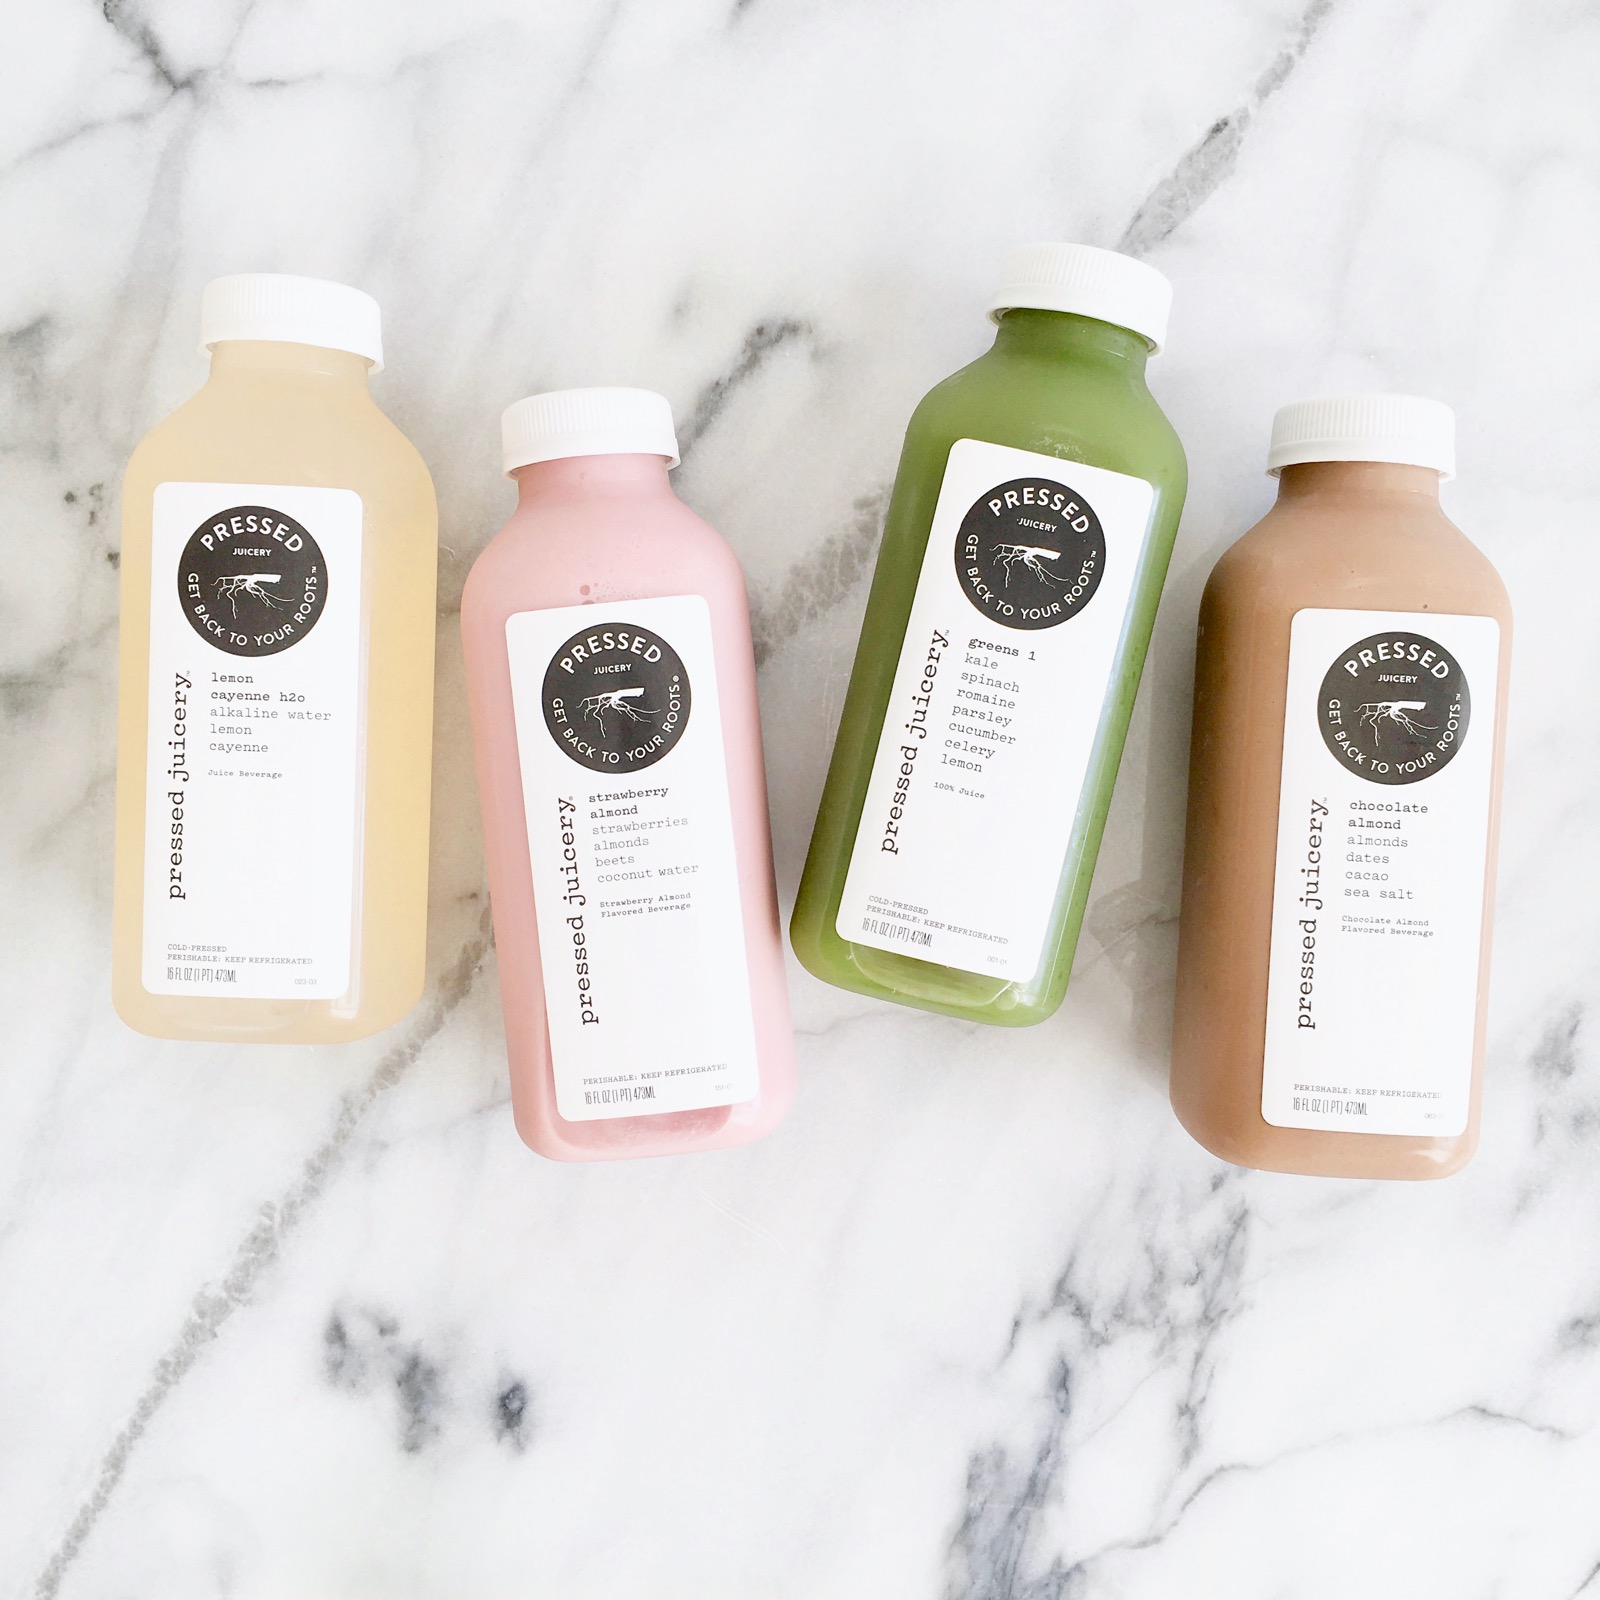 Pressed-Juicery-Review.jpg